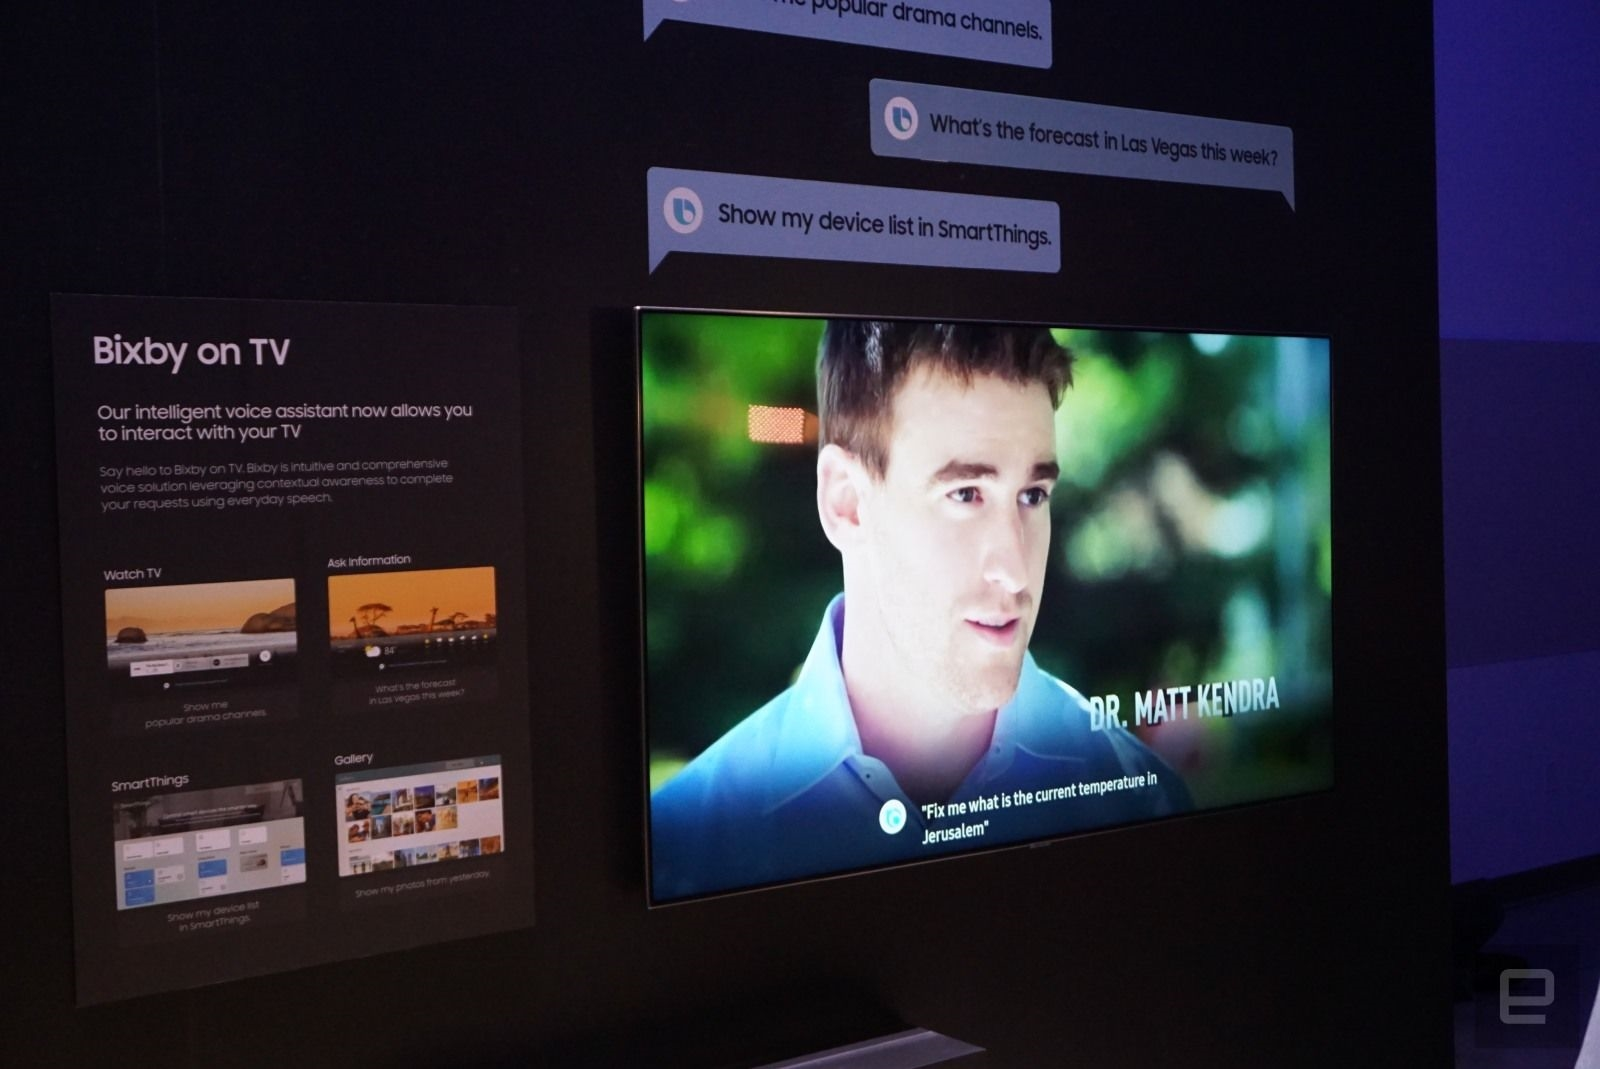 Samsung's 2019 TVs could add Google Assistant AI along with Bixby | DeviceDaily.com